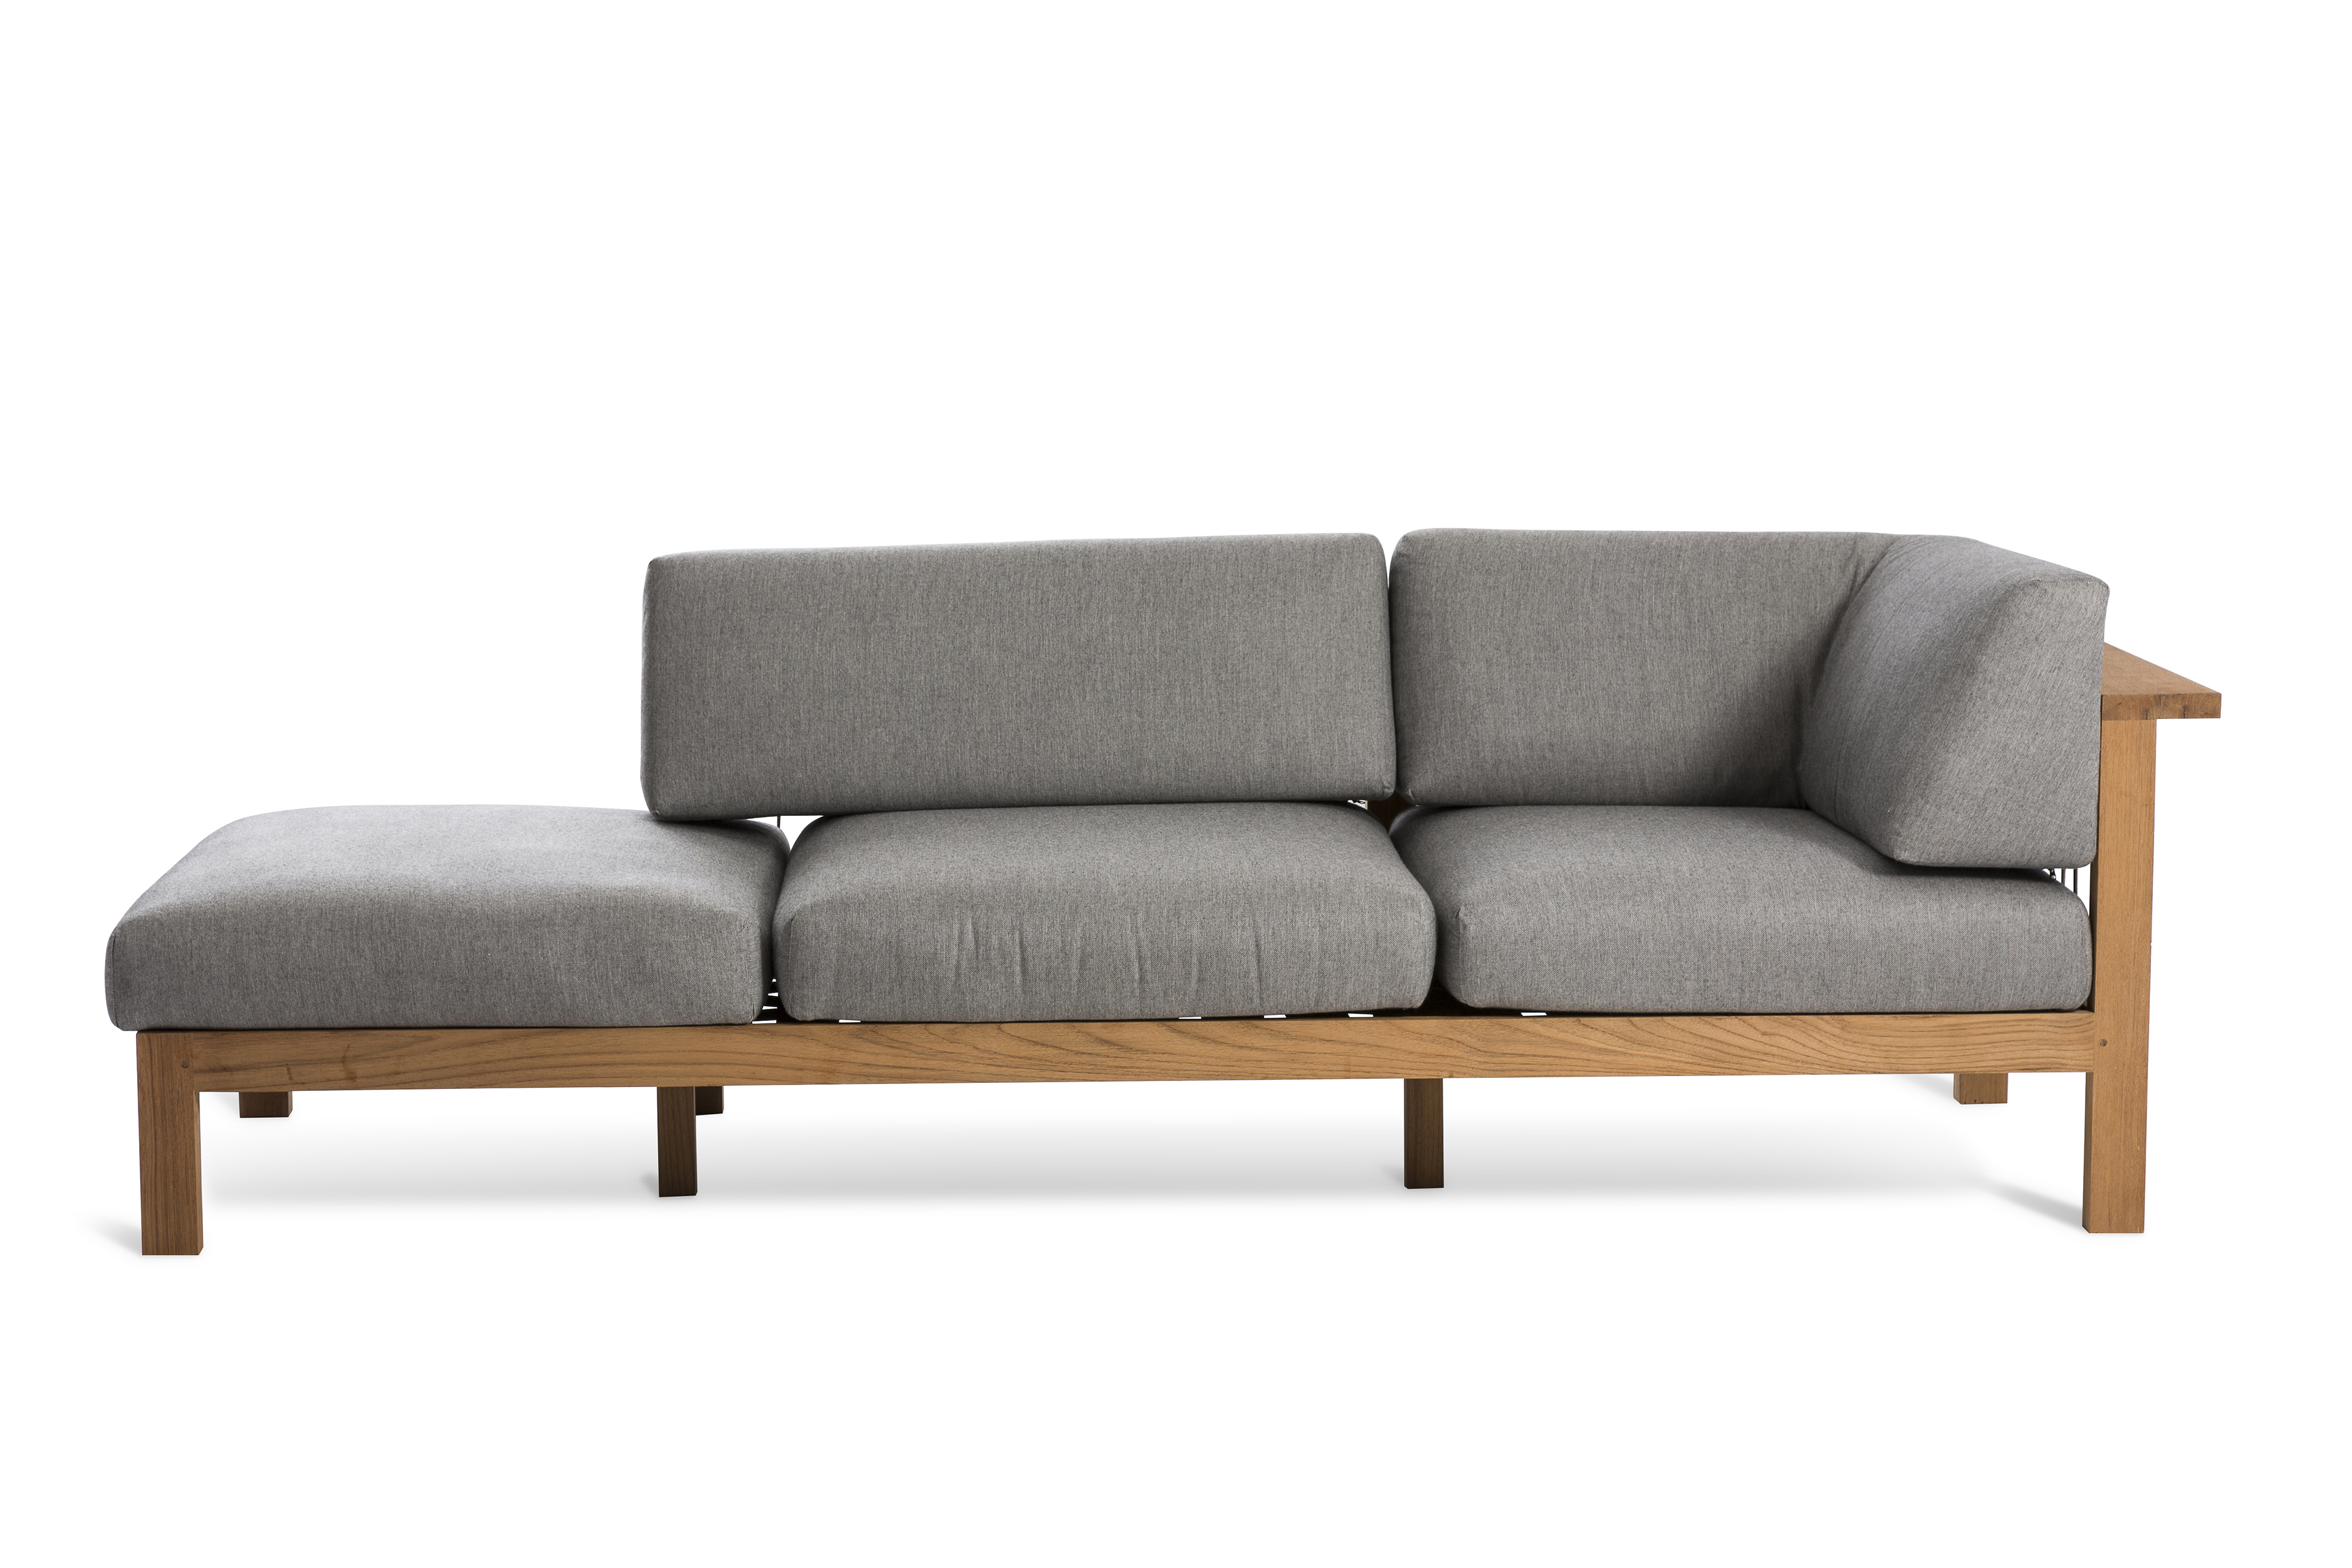 Maro sofa with chaise longue by oasiq design gijs papavoine for Sofa 1 plaza chaise longue